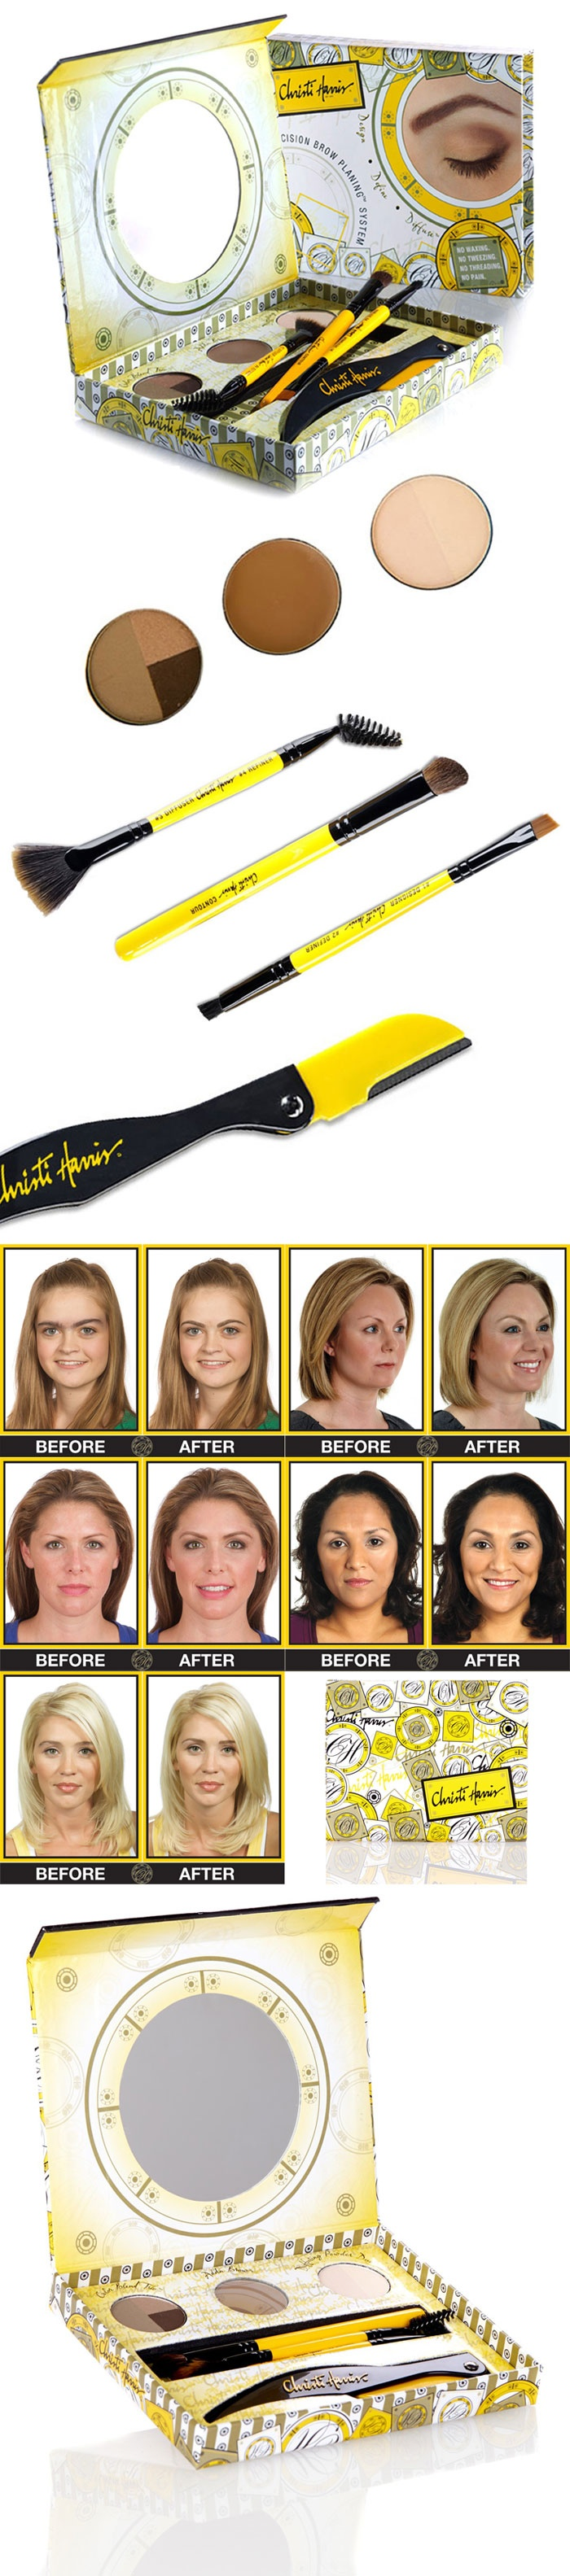 "Christi Harris Precision Brow Planing System :: $20, Retail $40 | HauteLook.com :: [7-pc set: Precision Brow Planter, Designer/Definer Dual Ended Brush (synthetic & boar bristles), Diffuser/Refiner Dual Ended Brush (synthetic & nylon bristles), Contour Brush (pony hair bristles), Color Blend Trio (0.063 oz), Adda Brow (0.049 oz), Diffusing Powder Duo (0.063 oz)] :: ""NO TWEEZING, NO WAXING, NO THREADING, NO PAIN, NO KIDDING!"" Here's how to do it: www.youtube.com/watch?v=KagMcM5g4BQ"